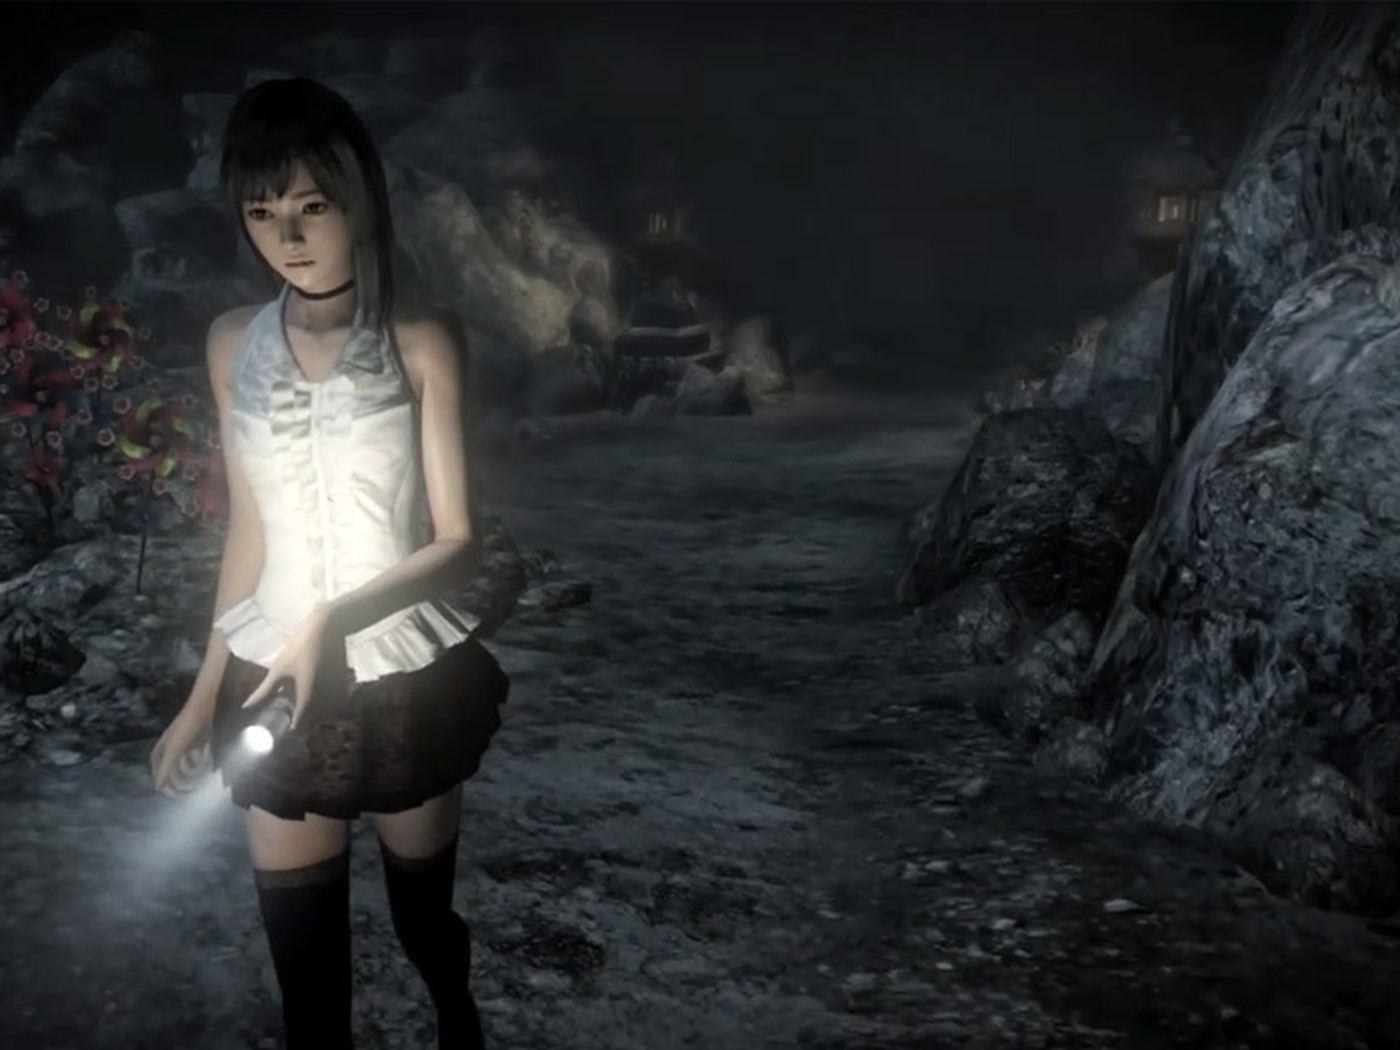 New Fatal Frame coming to Wii U this year - Polygon